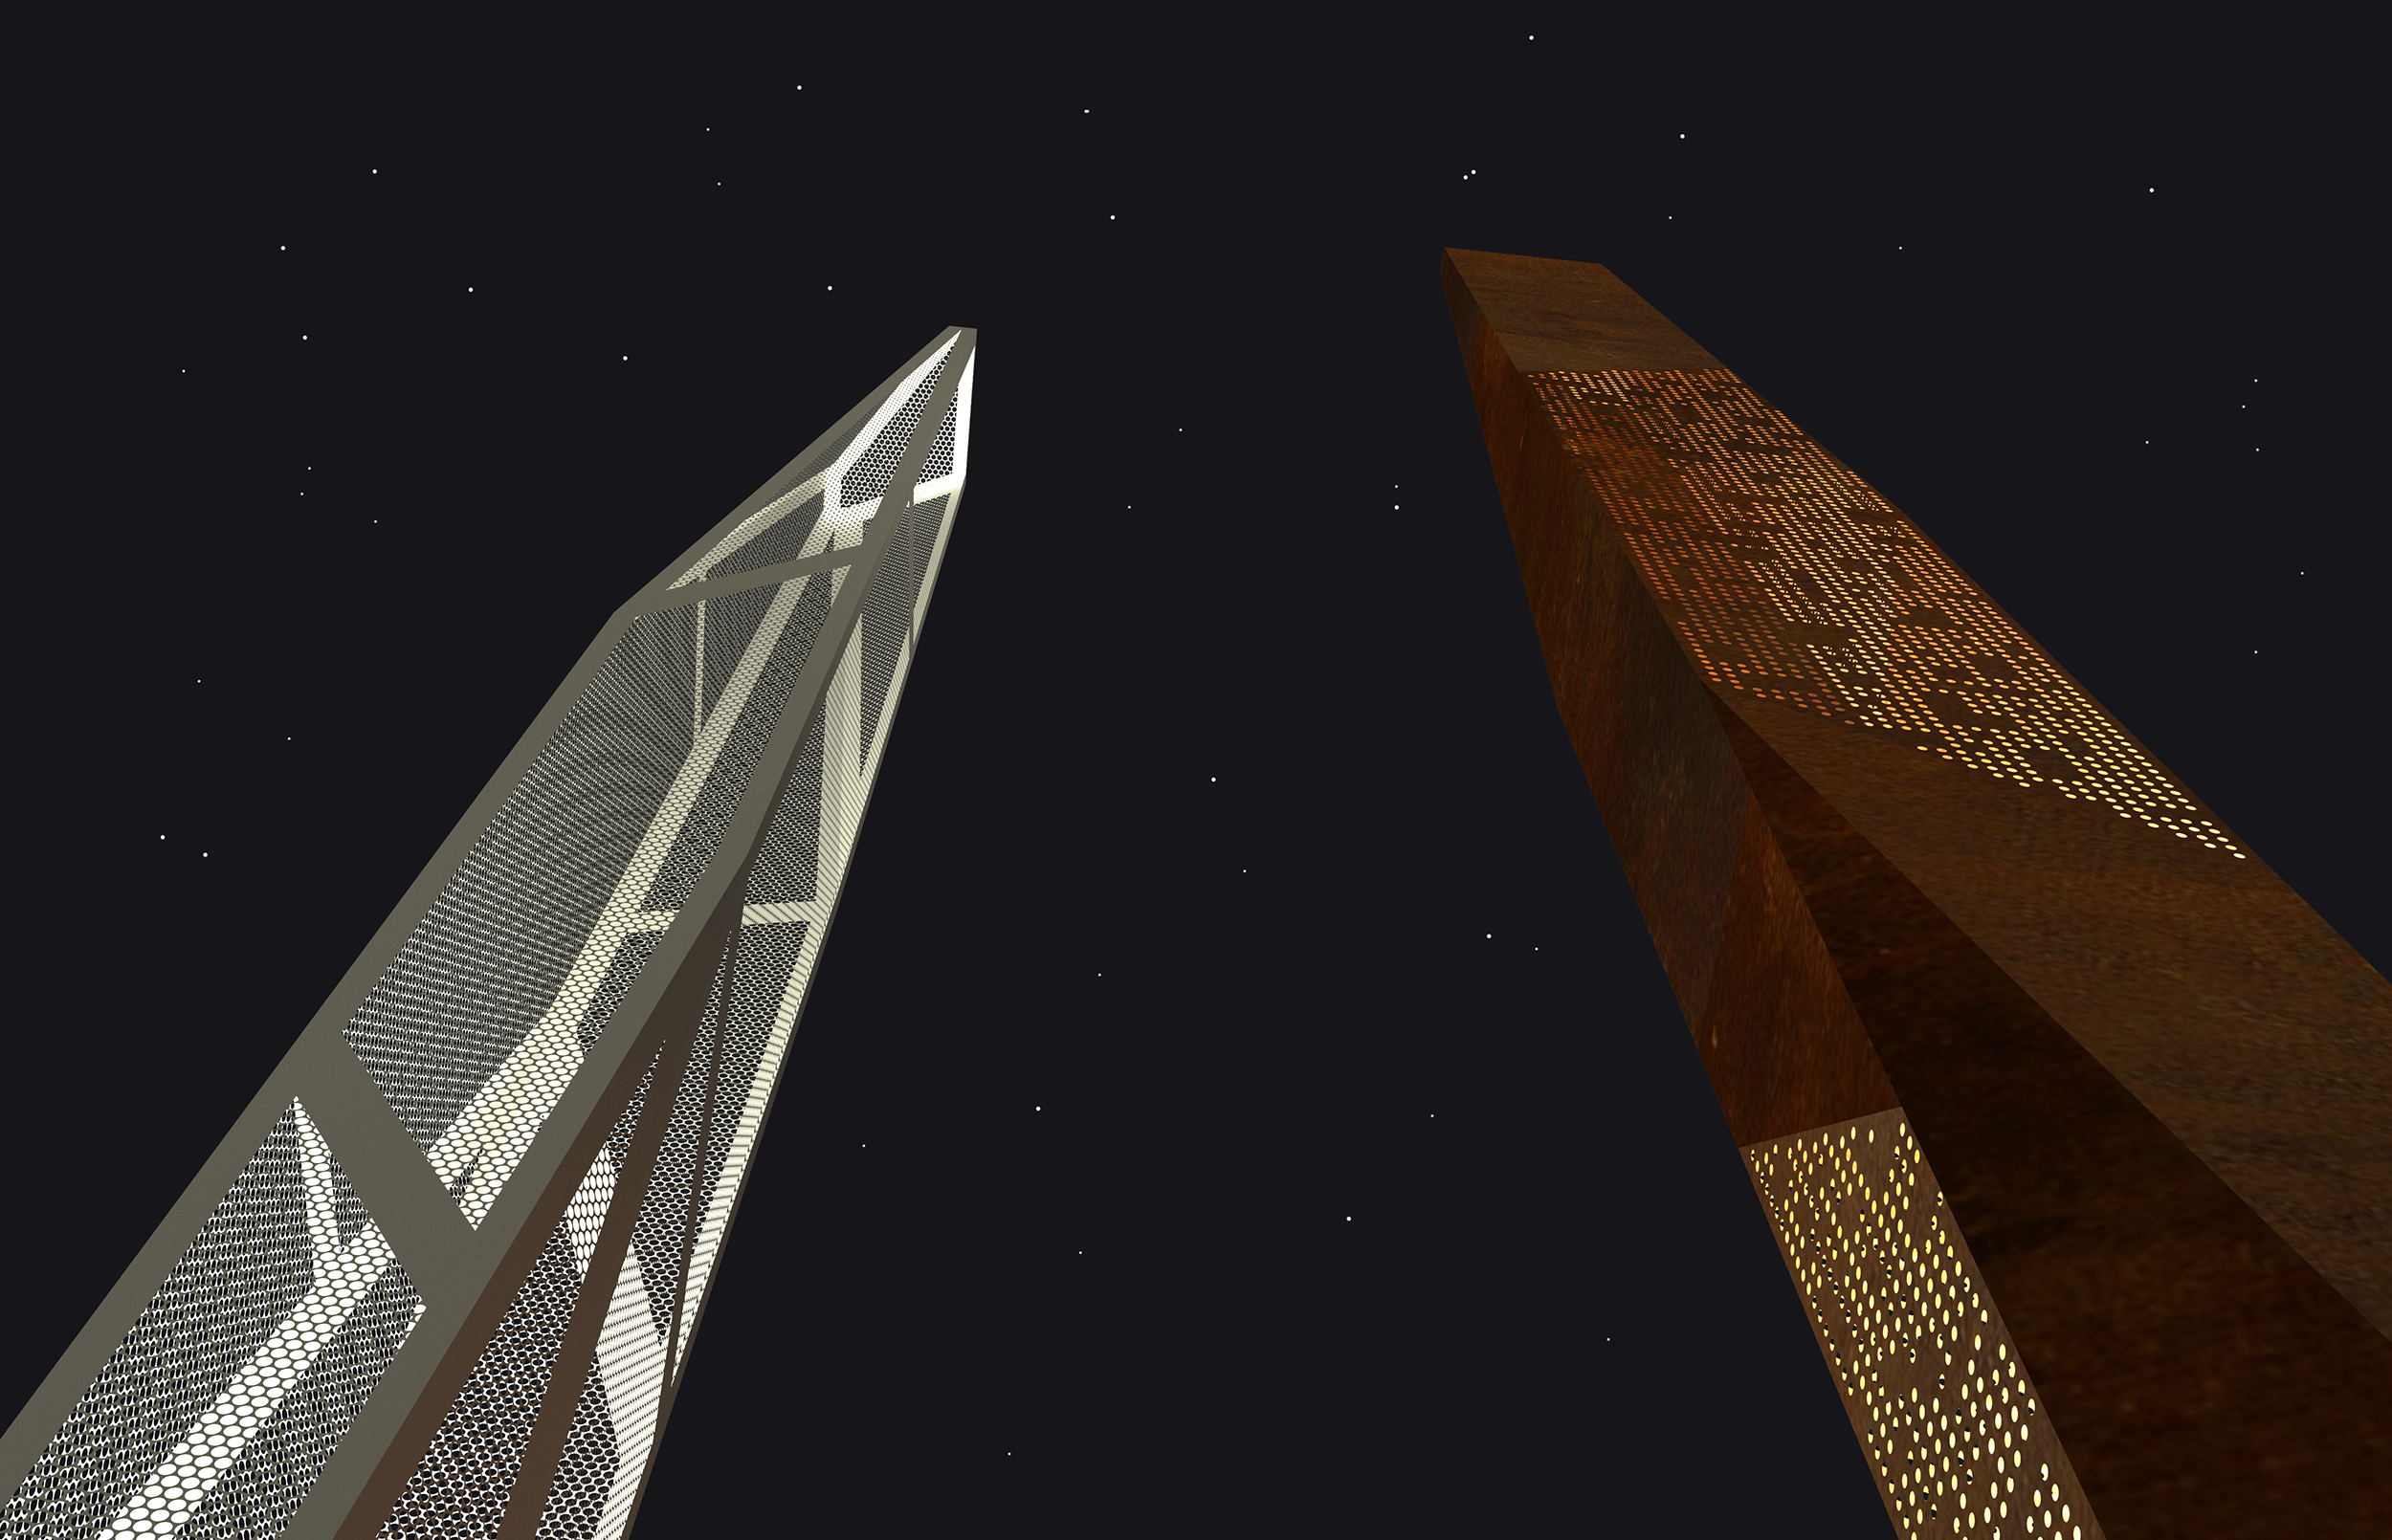 continuous_monuments_night_detail.jpg